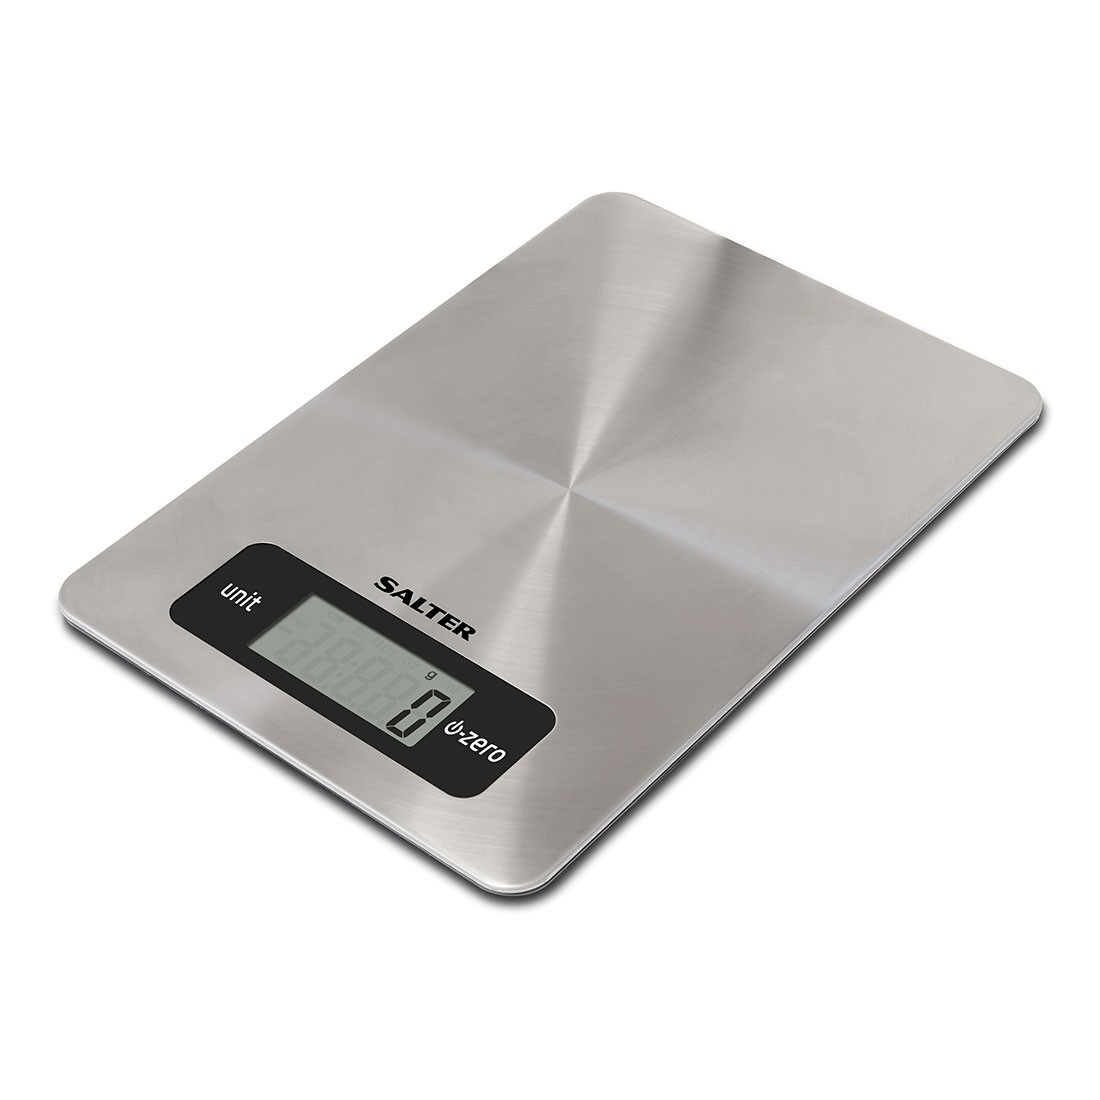 The Differences In Digital Kitchen Scales